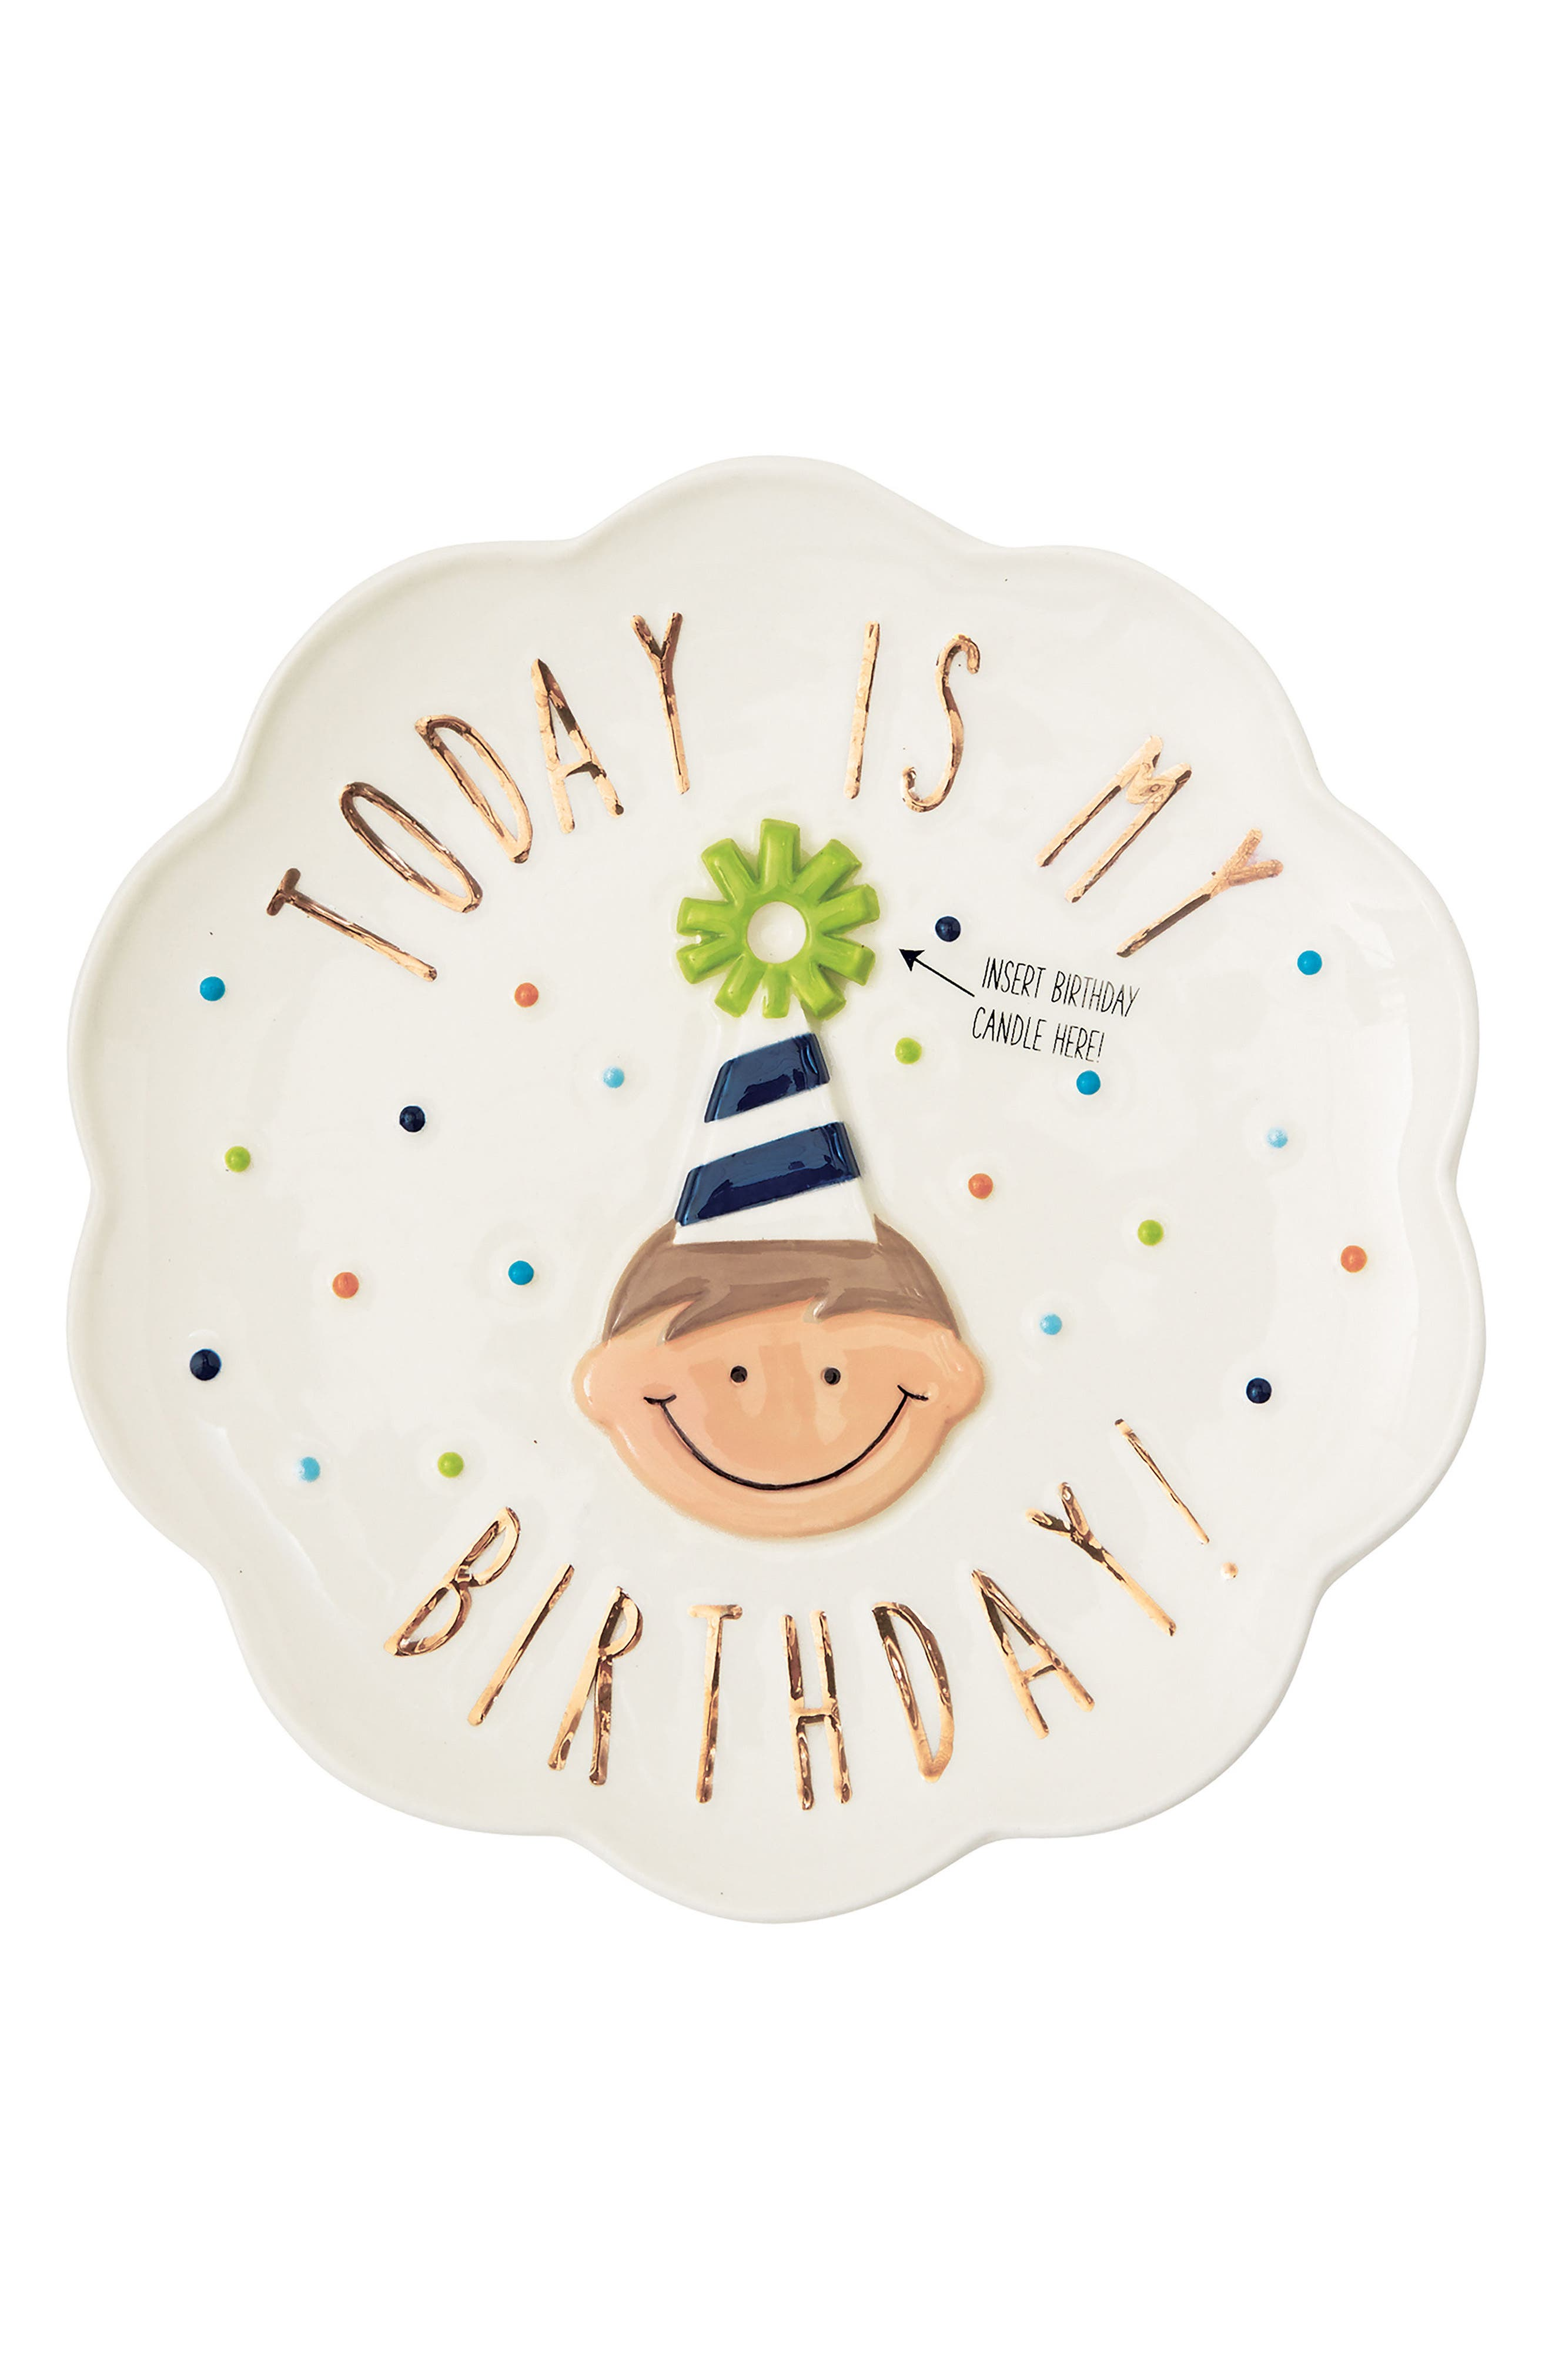 Birthday Boy Candle Plate,                             Main thumbnail 1, color,                             100